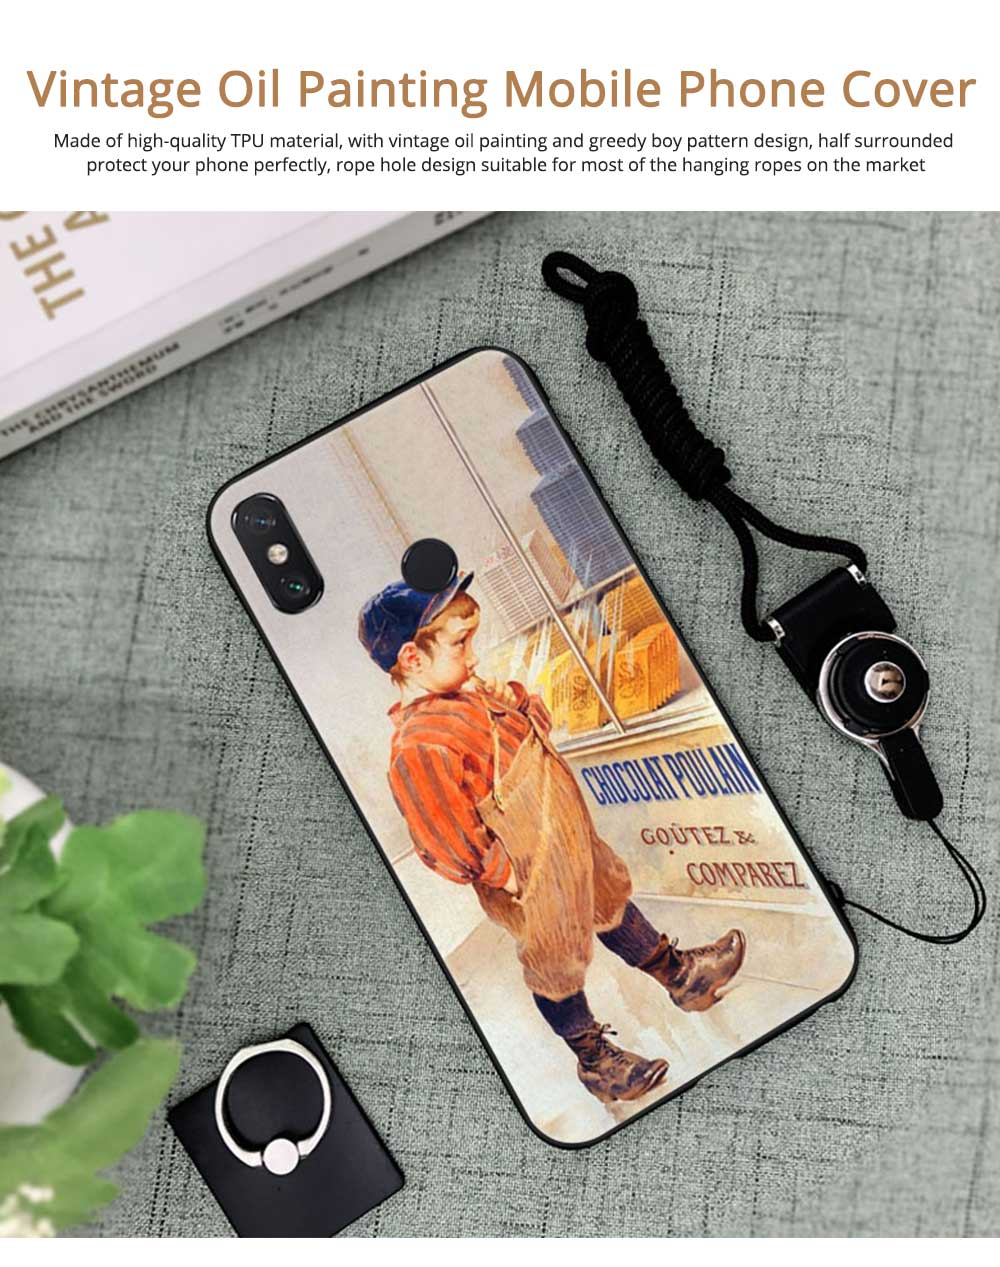 Vintage Oil Painting Mobile Phone Cover, Greedy Little Boy Printing  Phone Case for 6s, 6sp, 7p/8p, XS, XR 0